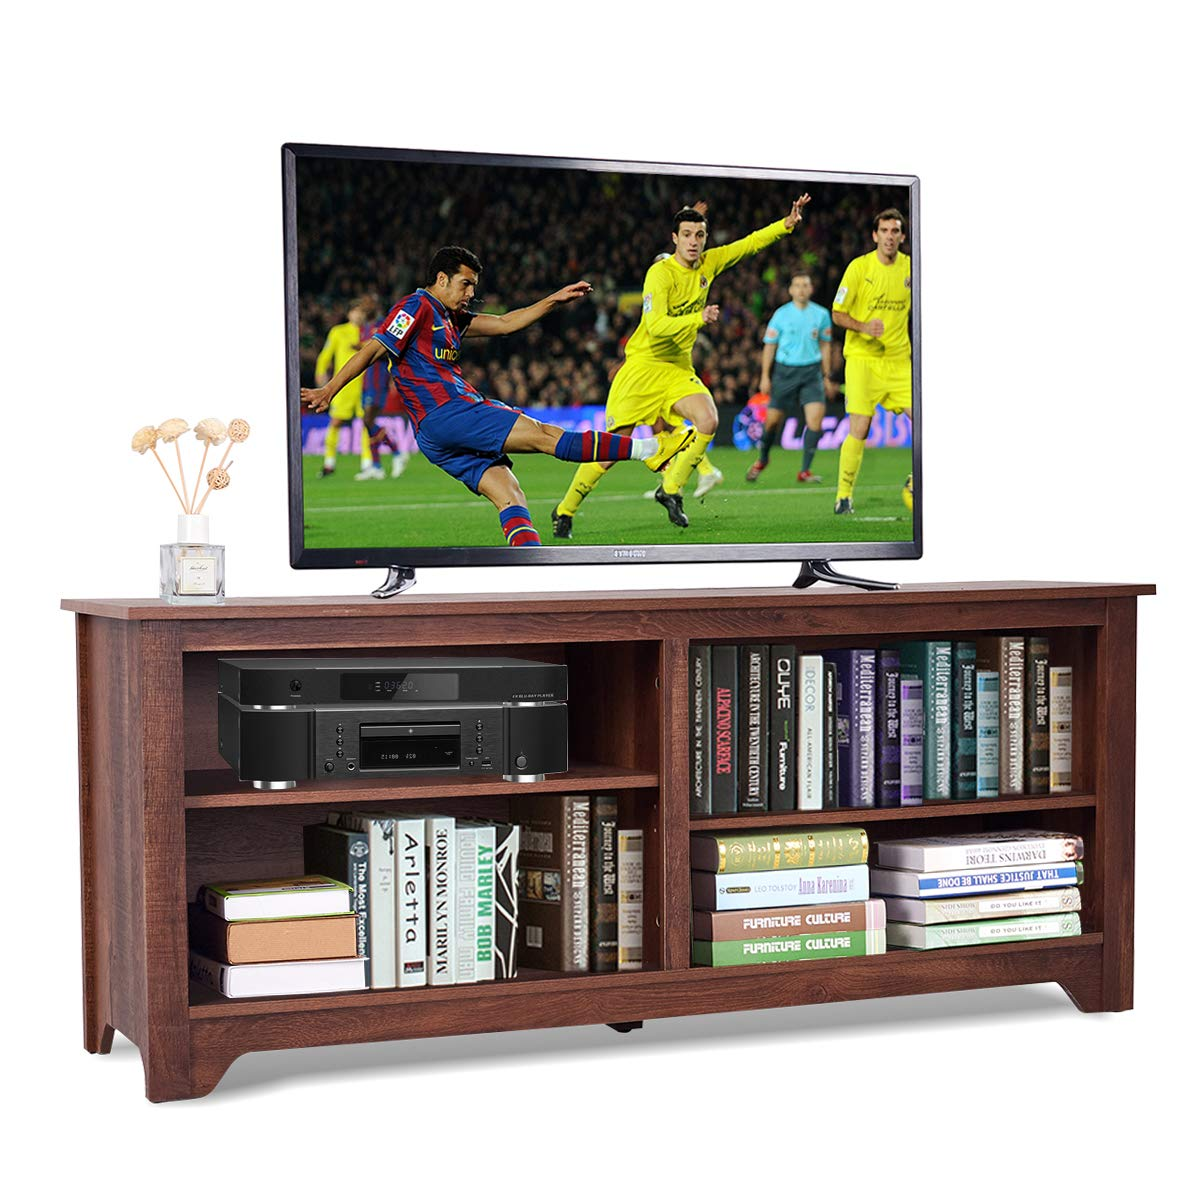 Amazon com tangkula tv stand modern wood storage console entertainment center for tv up to 58 home living room furniture with 4 open storage shelves